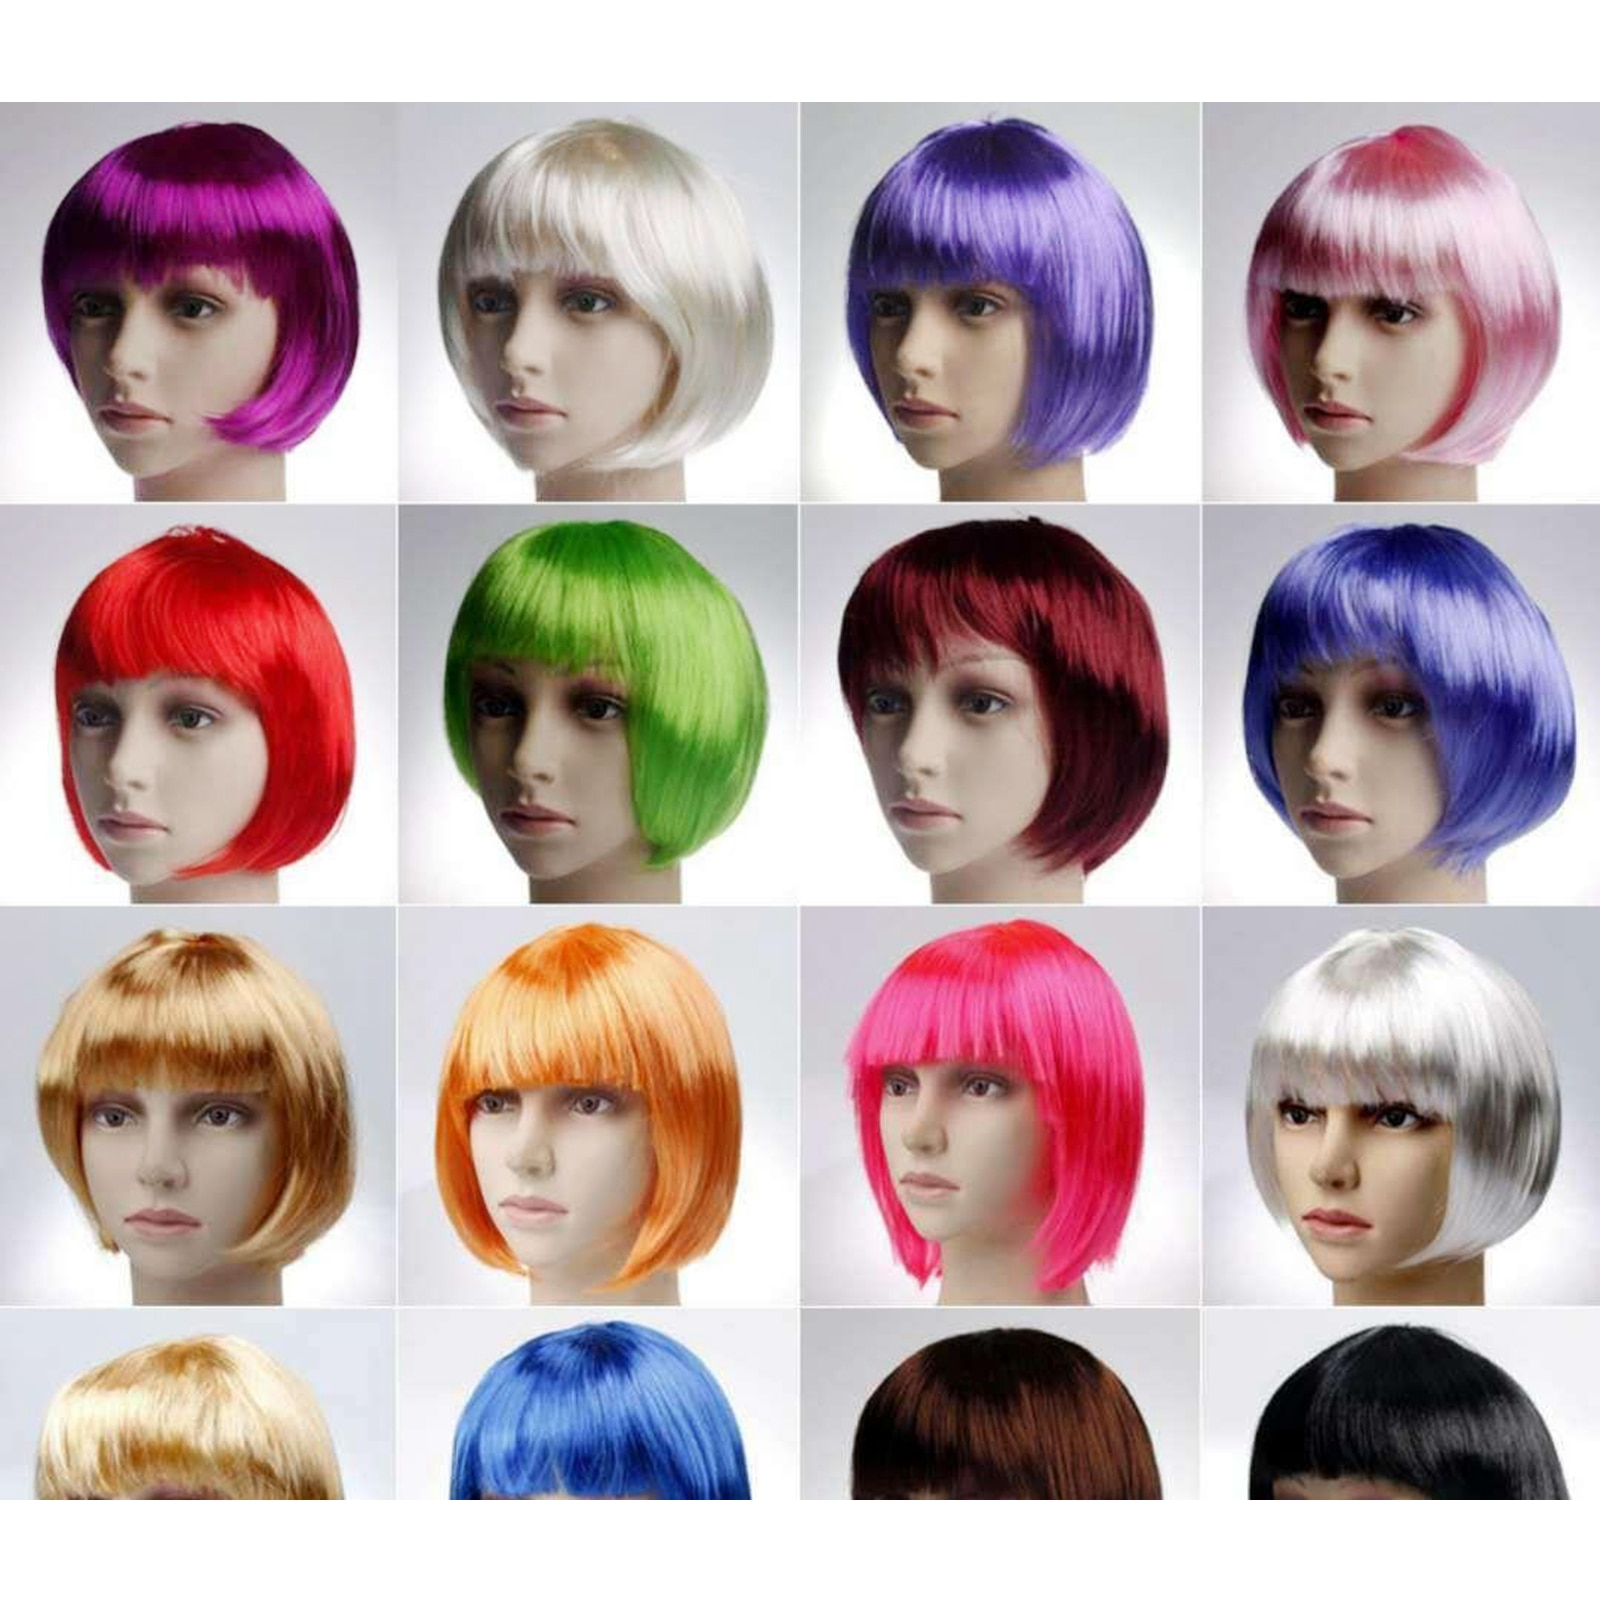 12PCS Colorful Short Bob Wigs, Great Gifts for Your Girlfriend and Female Friends, Especially Those Who are Cosplay Lovers